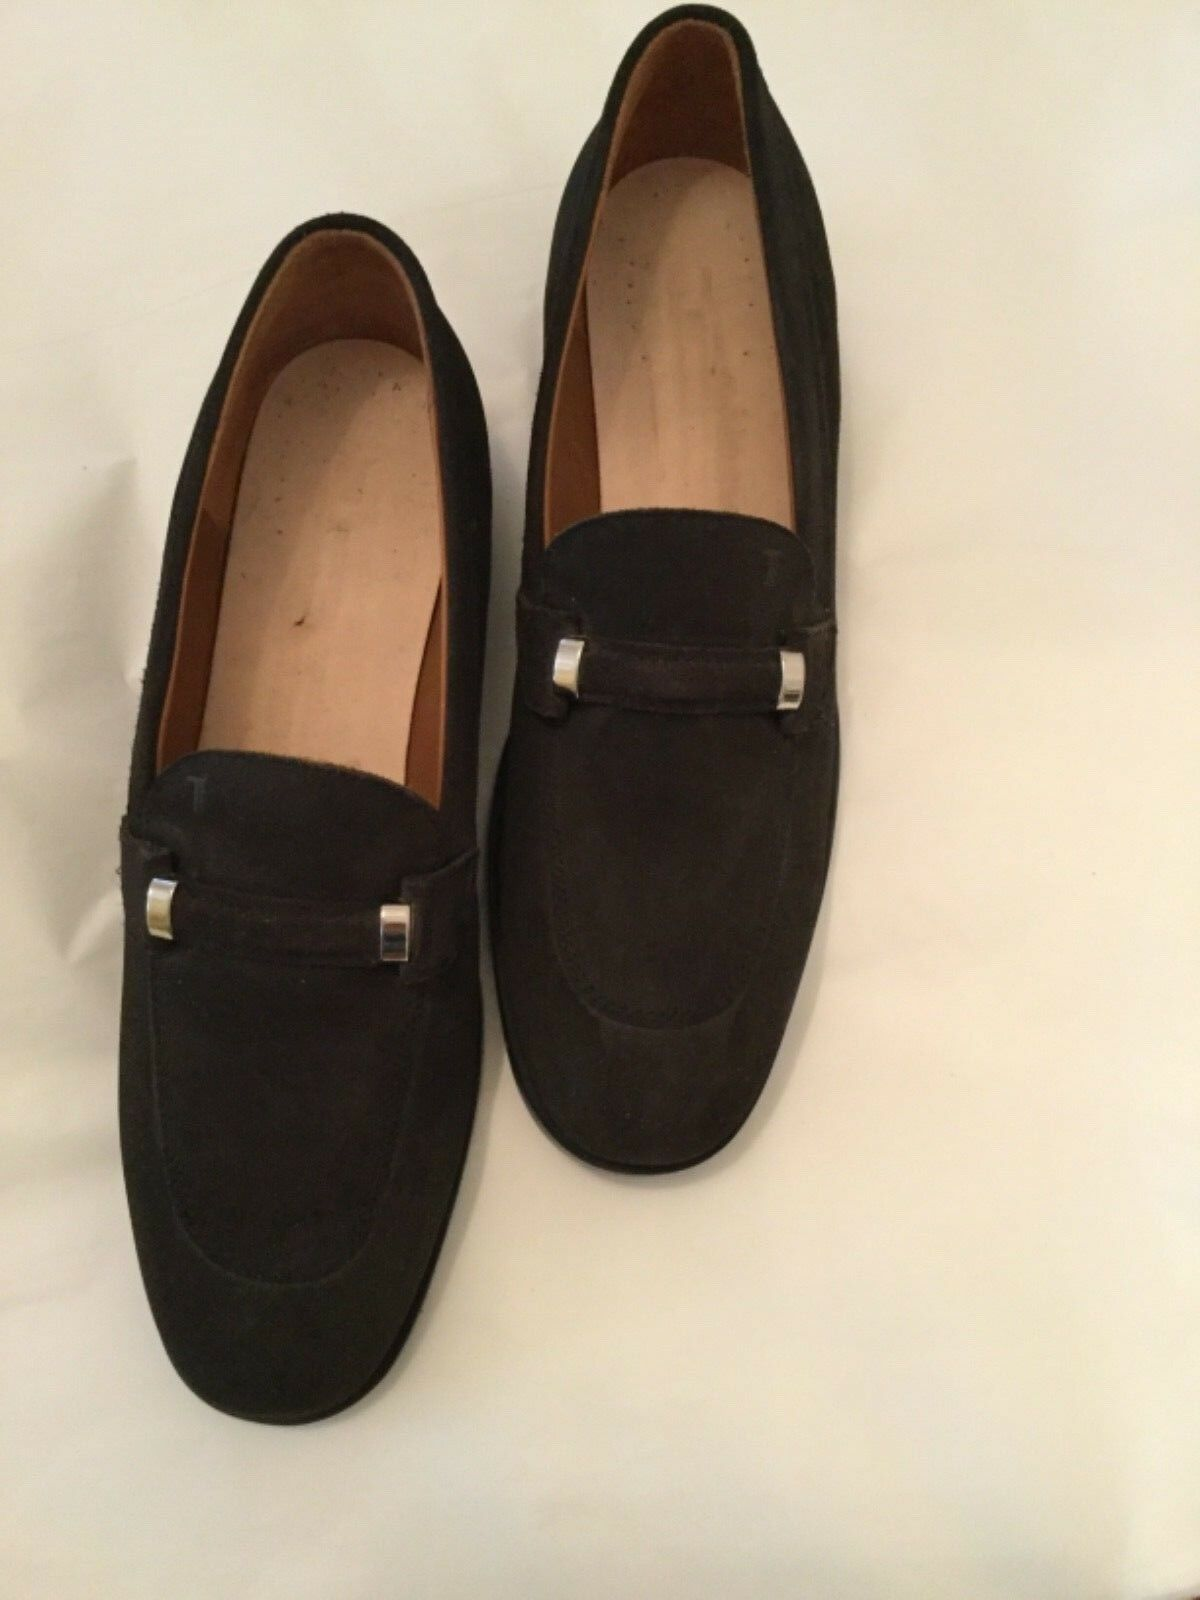 ultimi stili EXCELLENT CONDITION Tods Gommini donna's Suede Loafers - - - 41  classico senza tempo